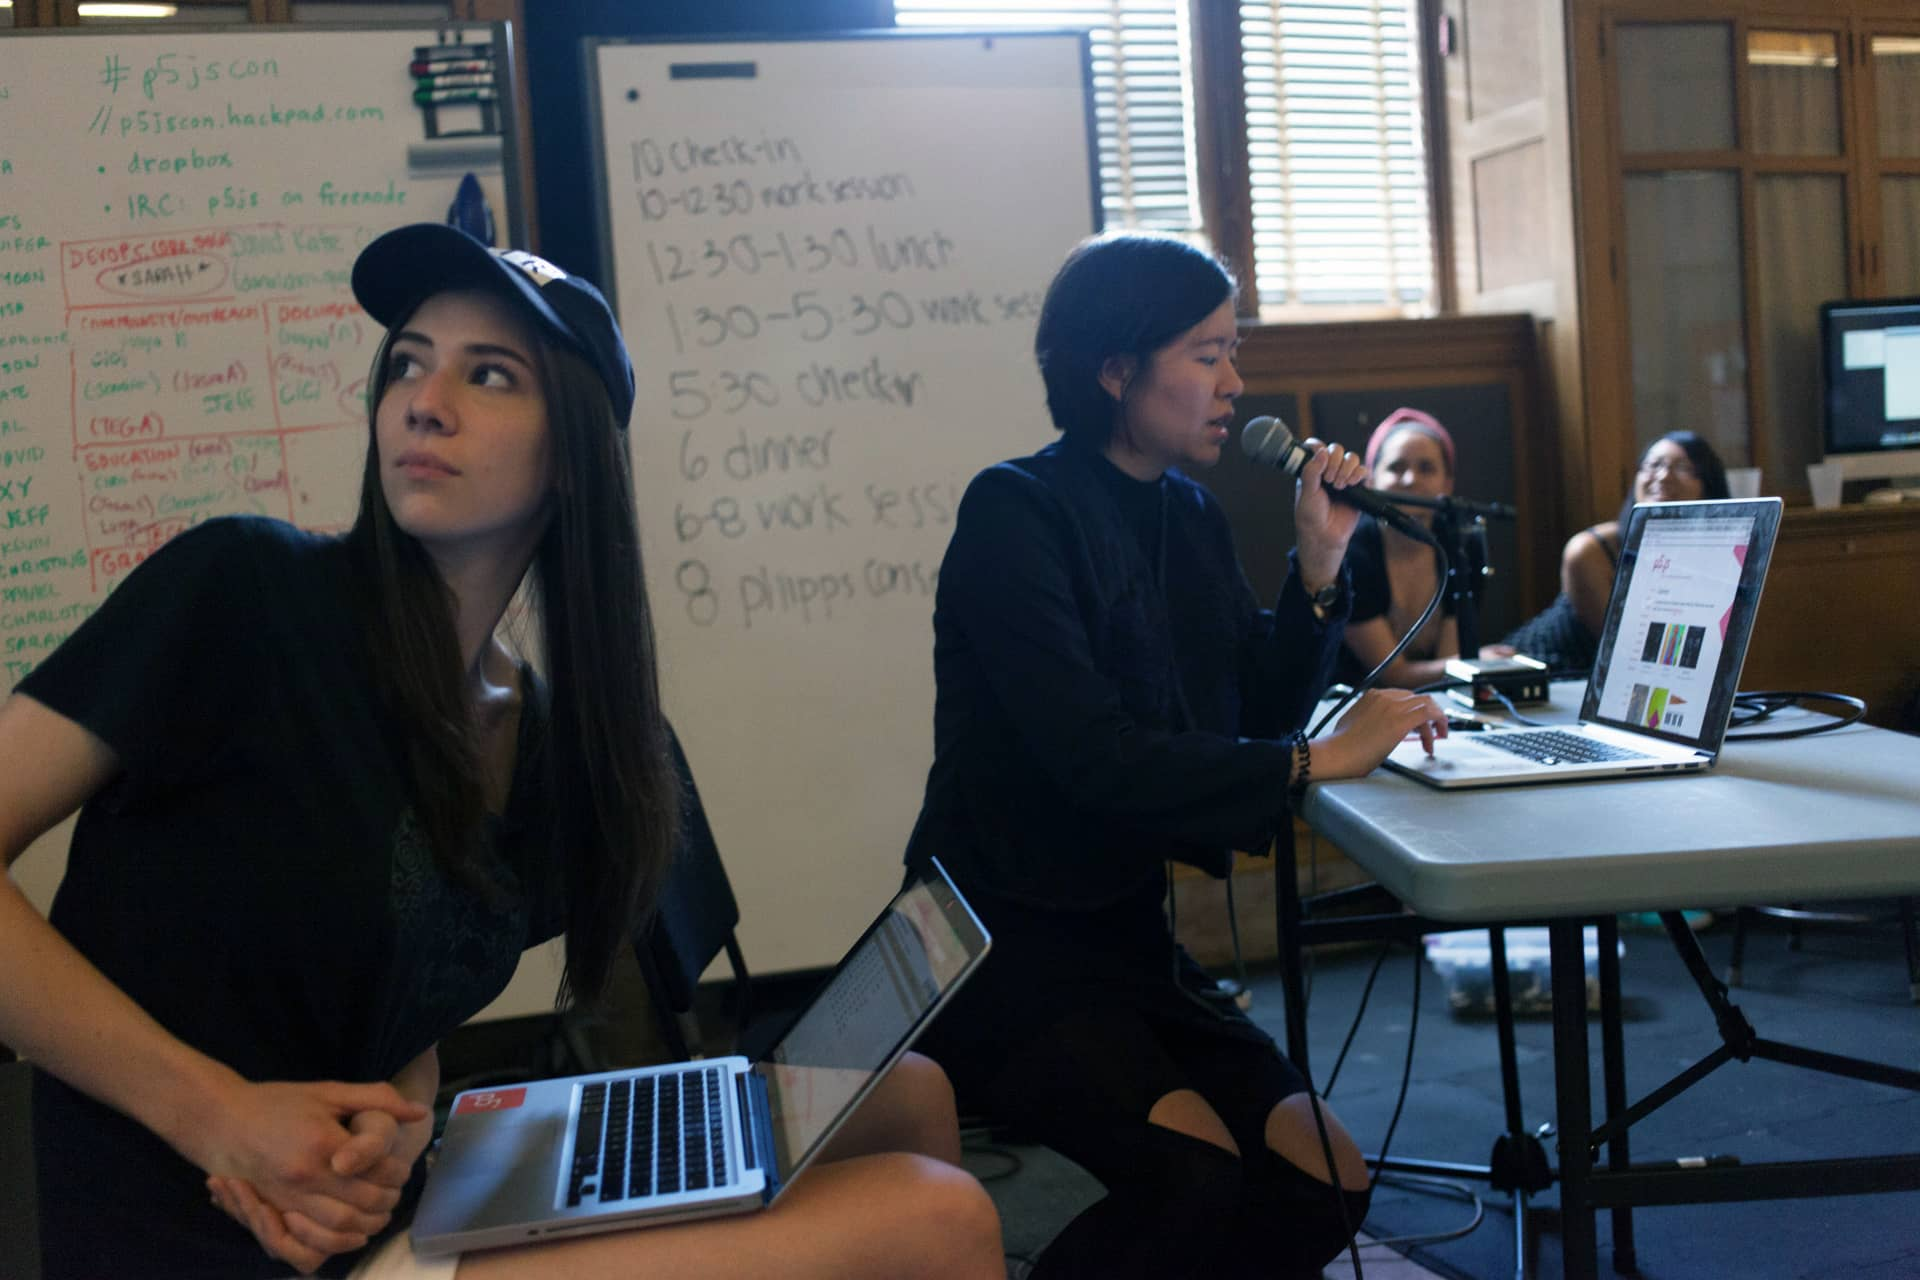 Woman reads about p5.js into a microphone to three female students""